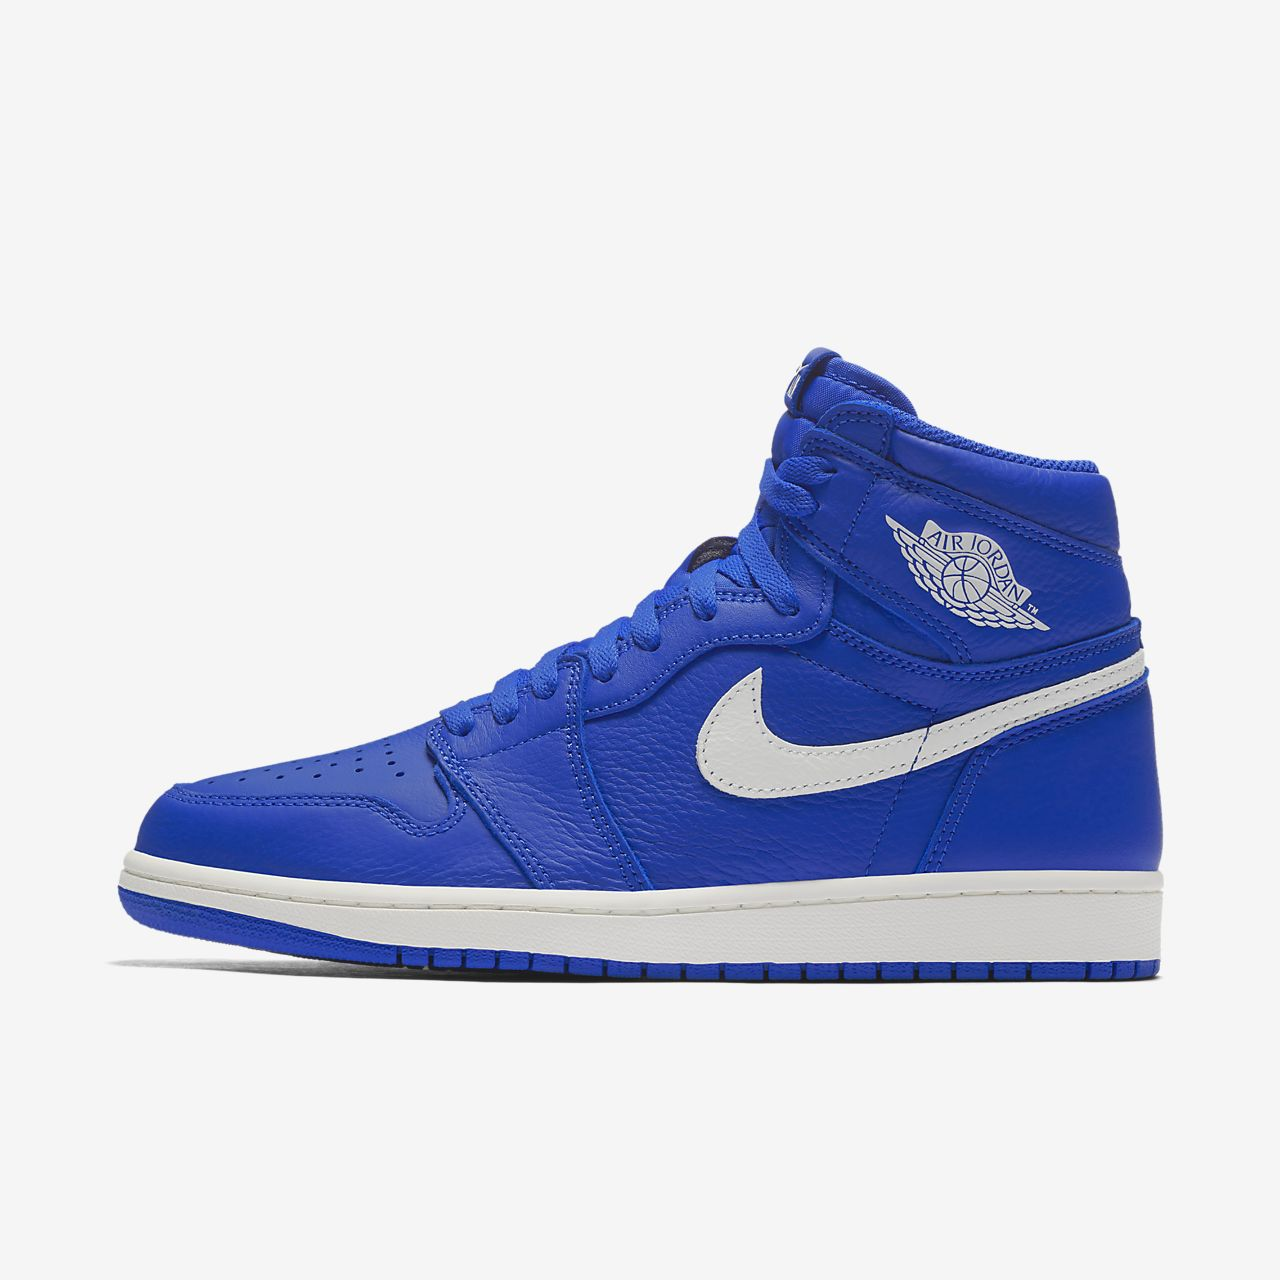 2f28b9c3002 Air Jordan 1 Retro High OG Shoe. Nike.com BE